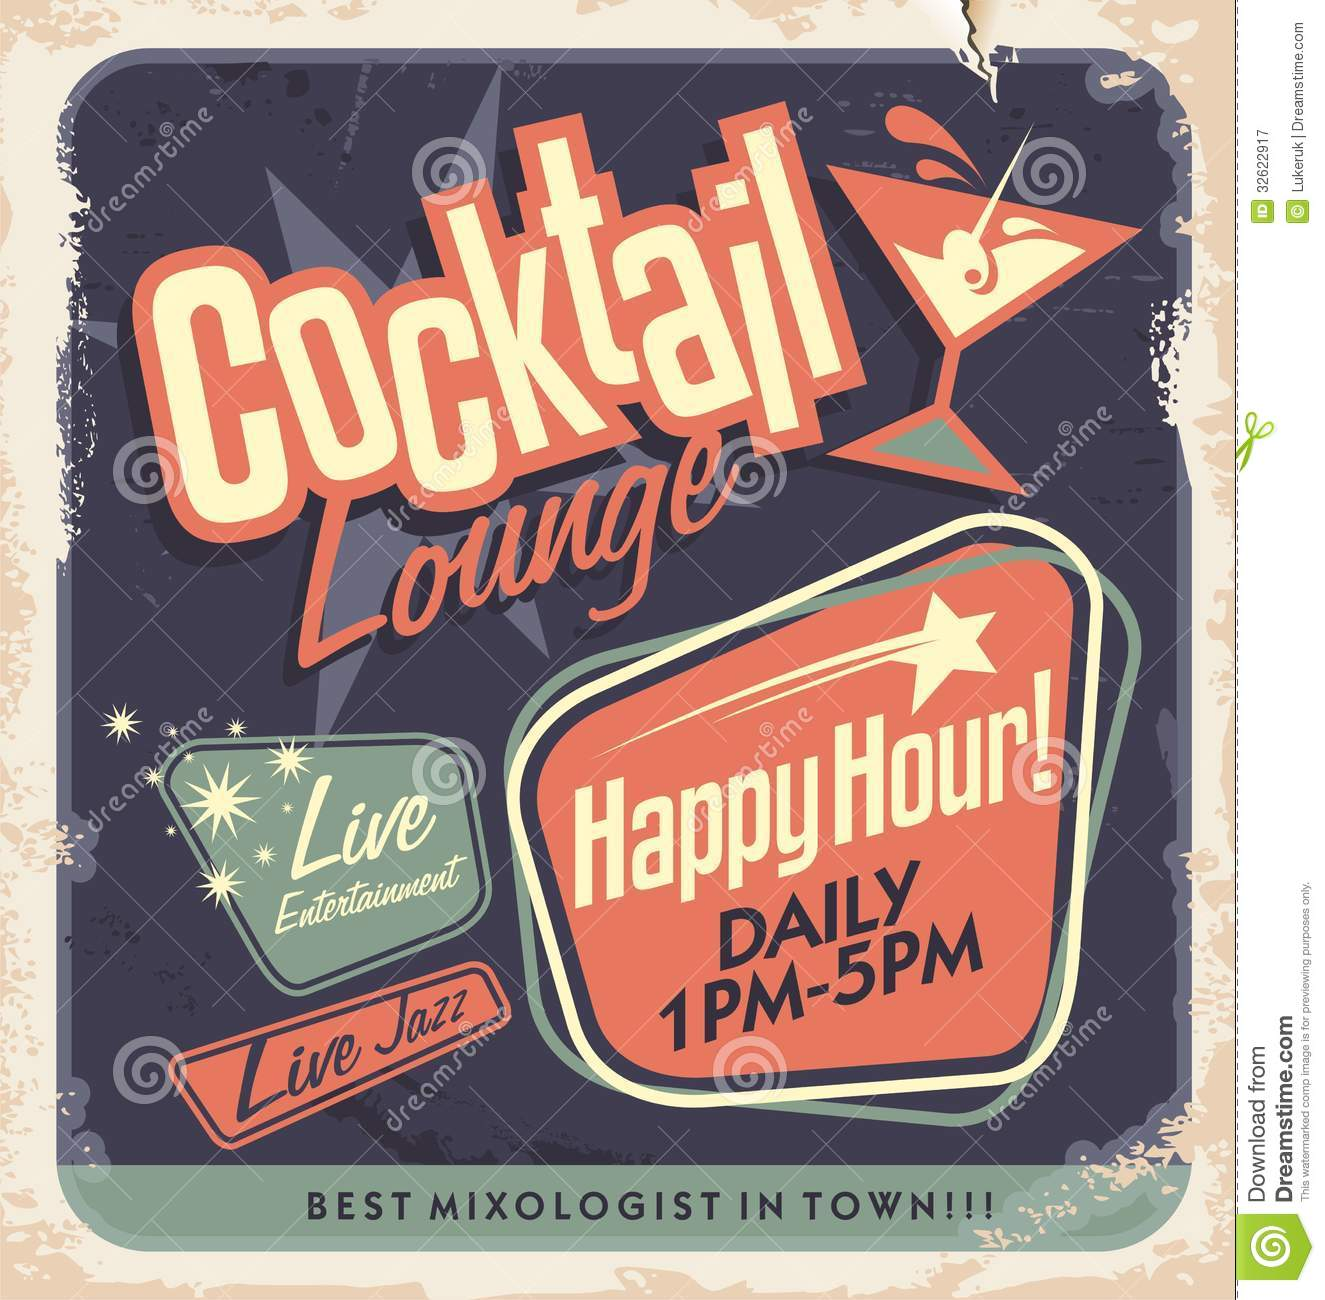 Retro poster design for cocktail lounge